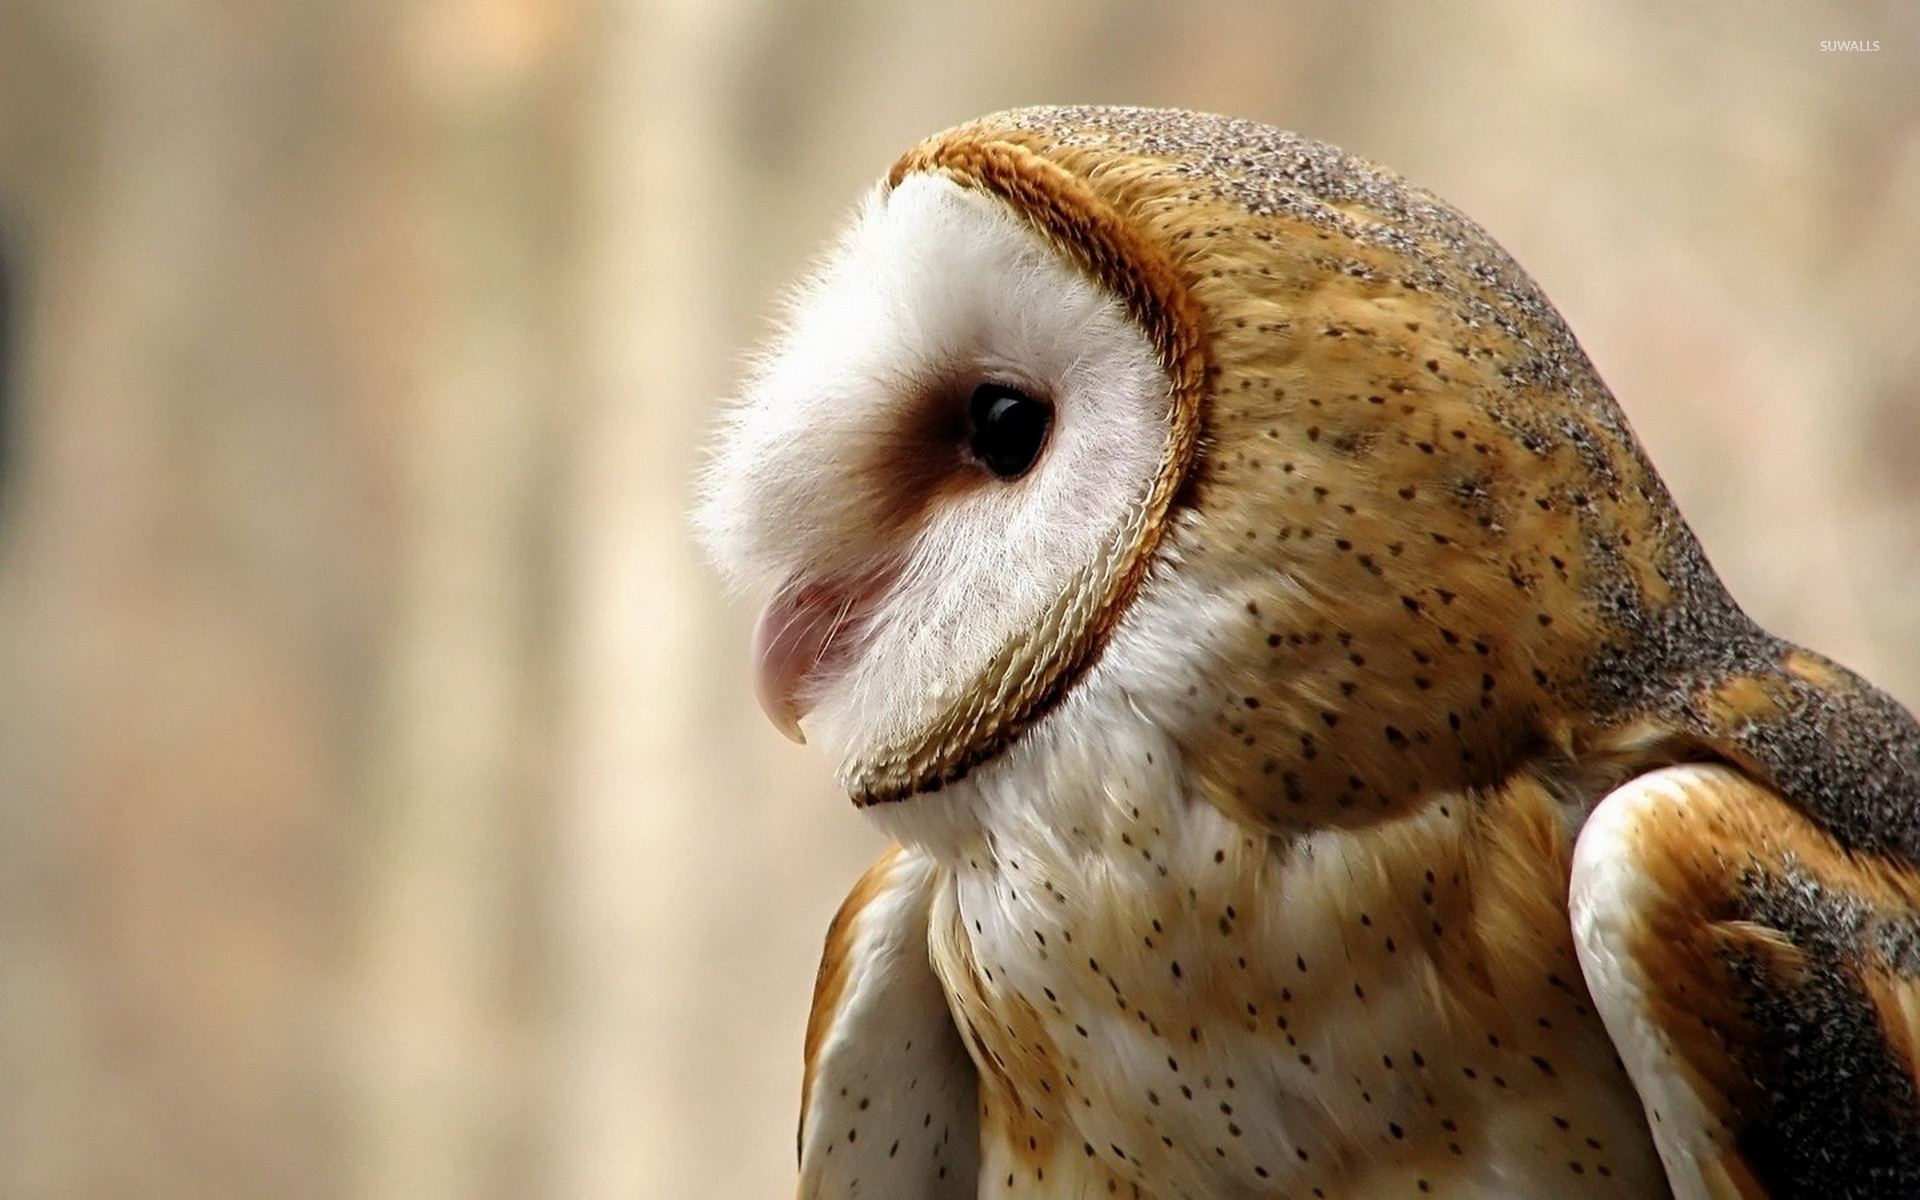 Cute Owl Wallpaper With Quotes Barn Owl Wallpaper Animal Wallpapers 37237